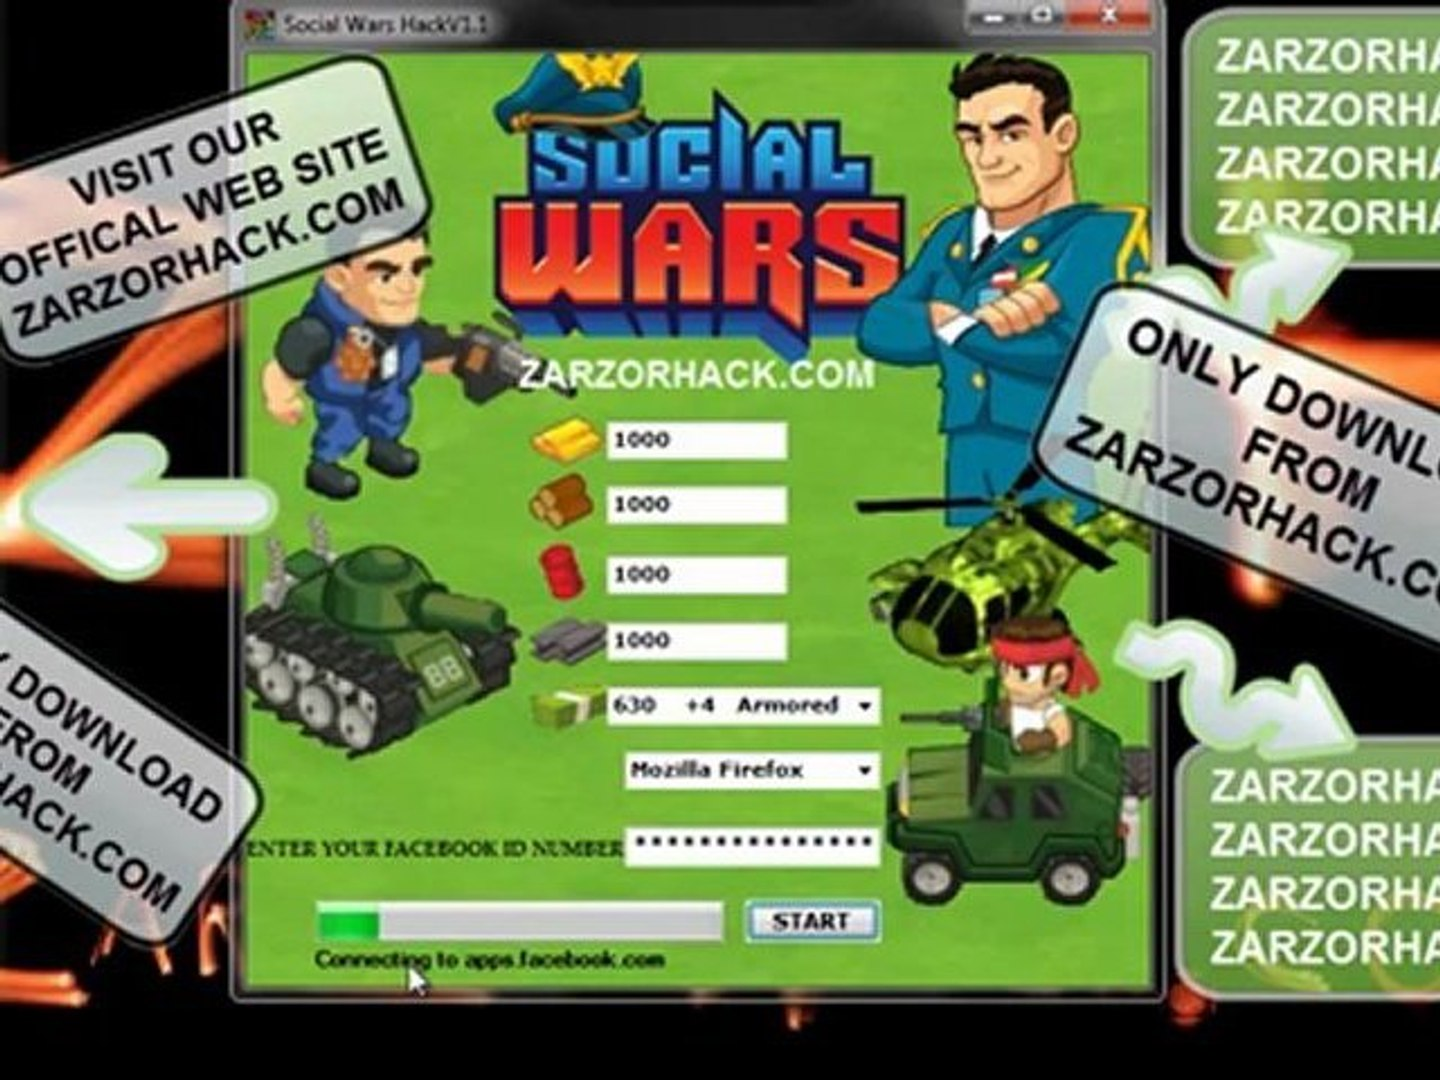 SOCIAL WARS CHEAT TOOL V1.1 (SOCIAL WARS CASH, GOLD, WOOD, OIL AND STEEL) UPDATED FREE DOWNLOAD + *N